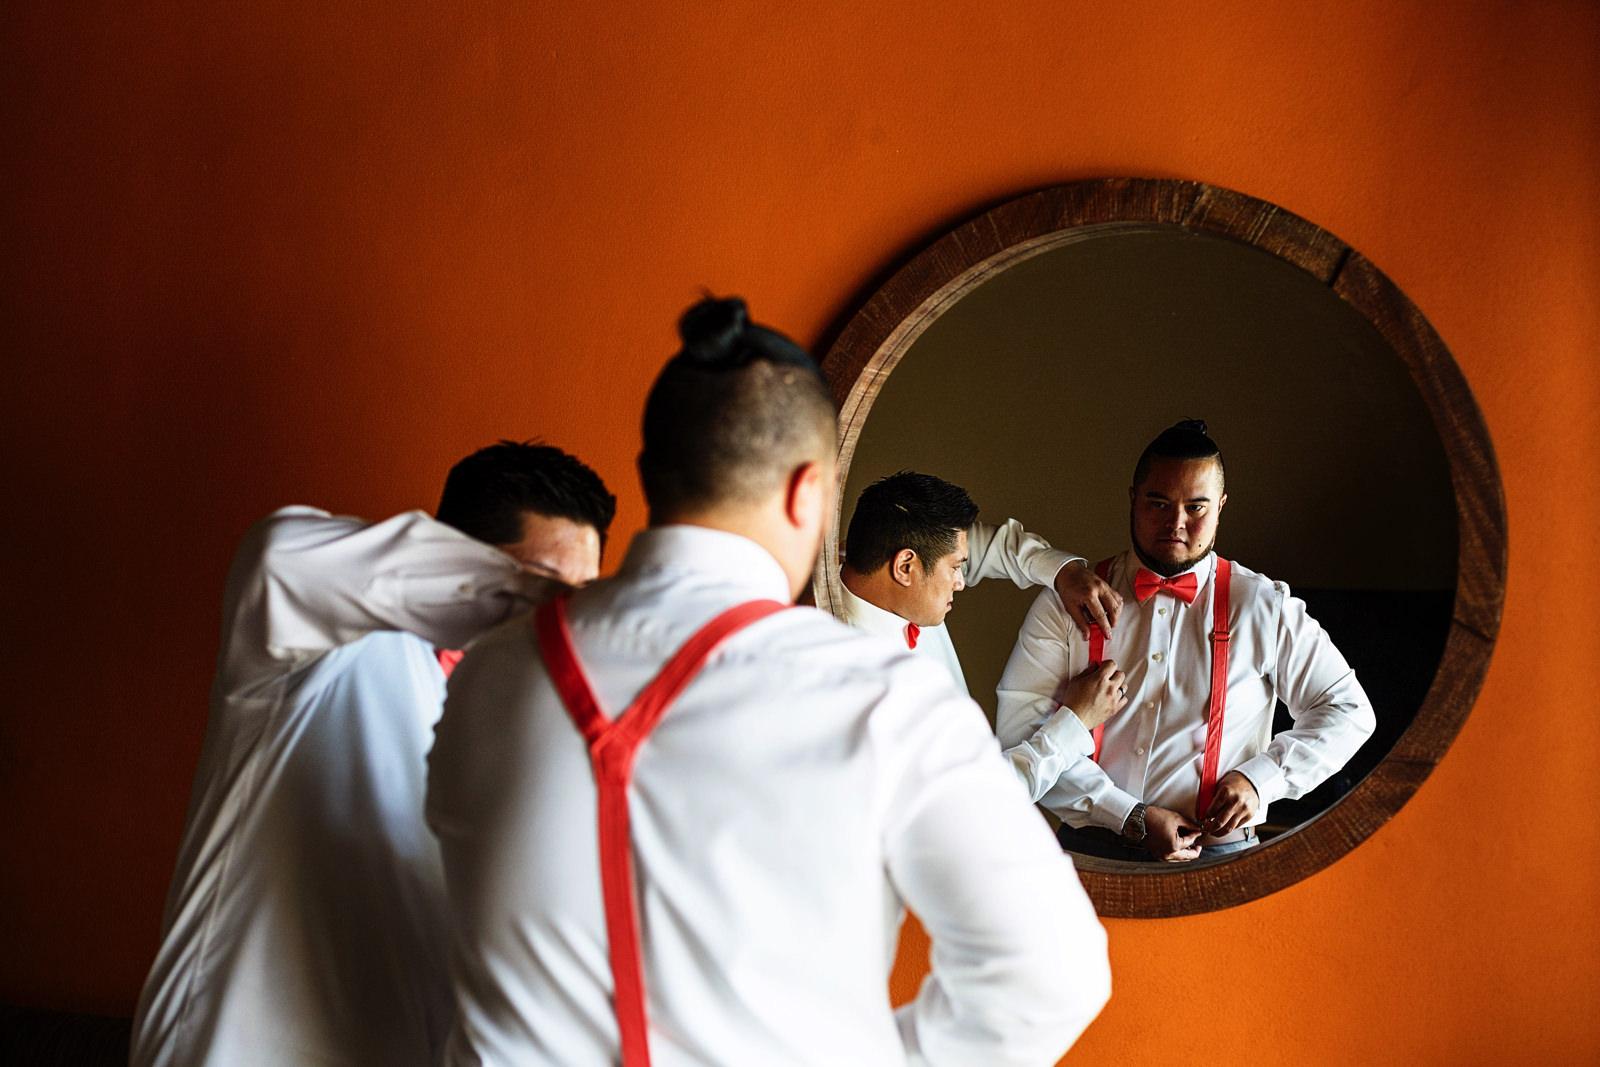 Groom getting his suspenders in front of a mirror on an orange wall